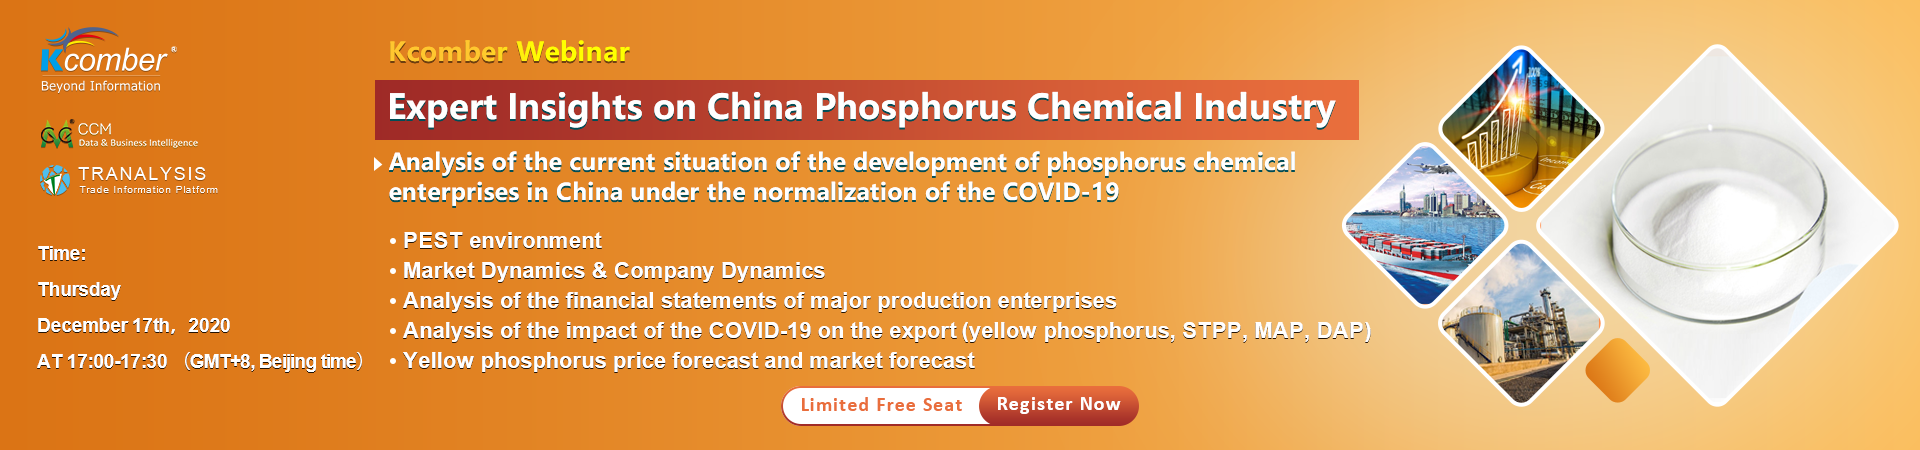 Expert Insights on China Phosphorus Chemical Industry